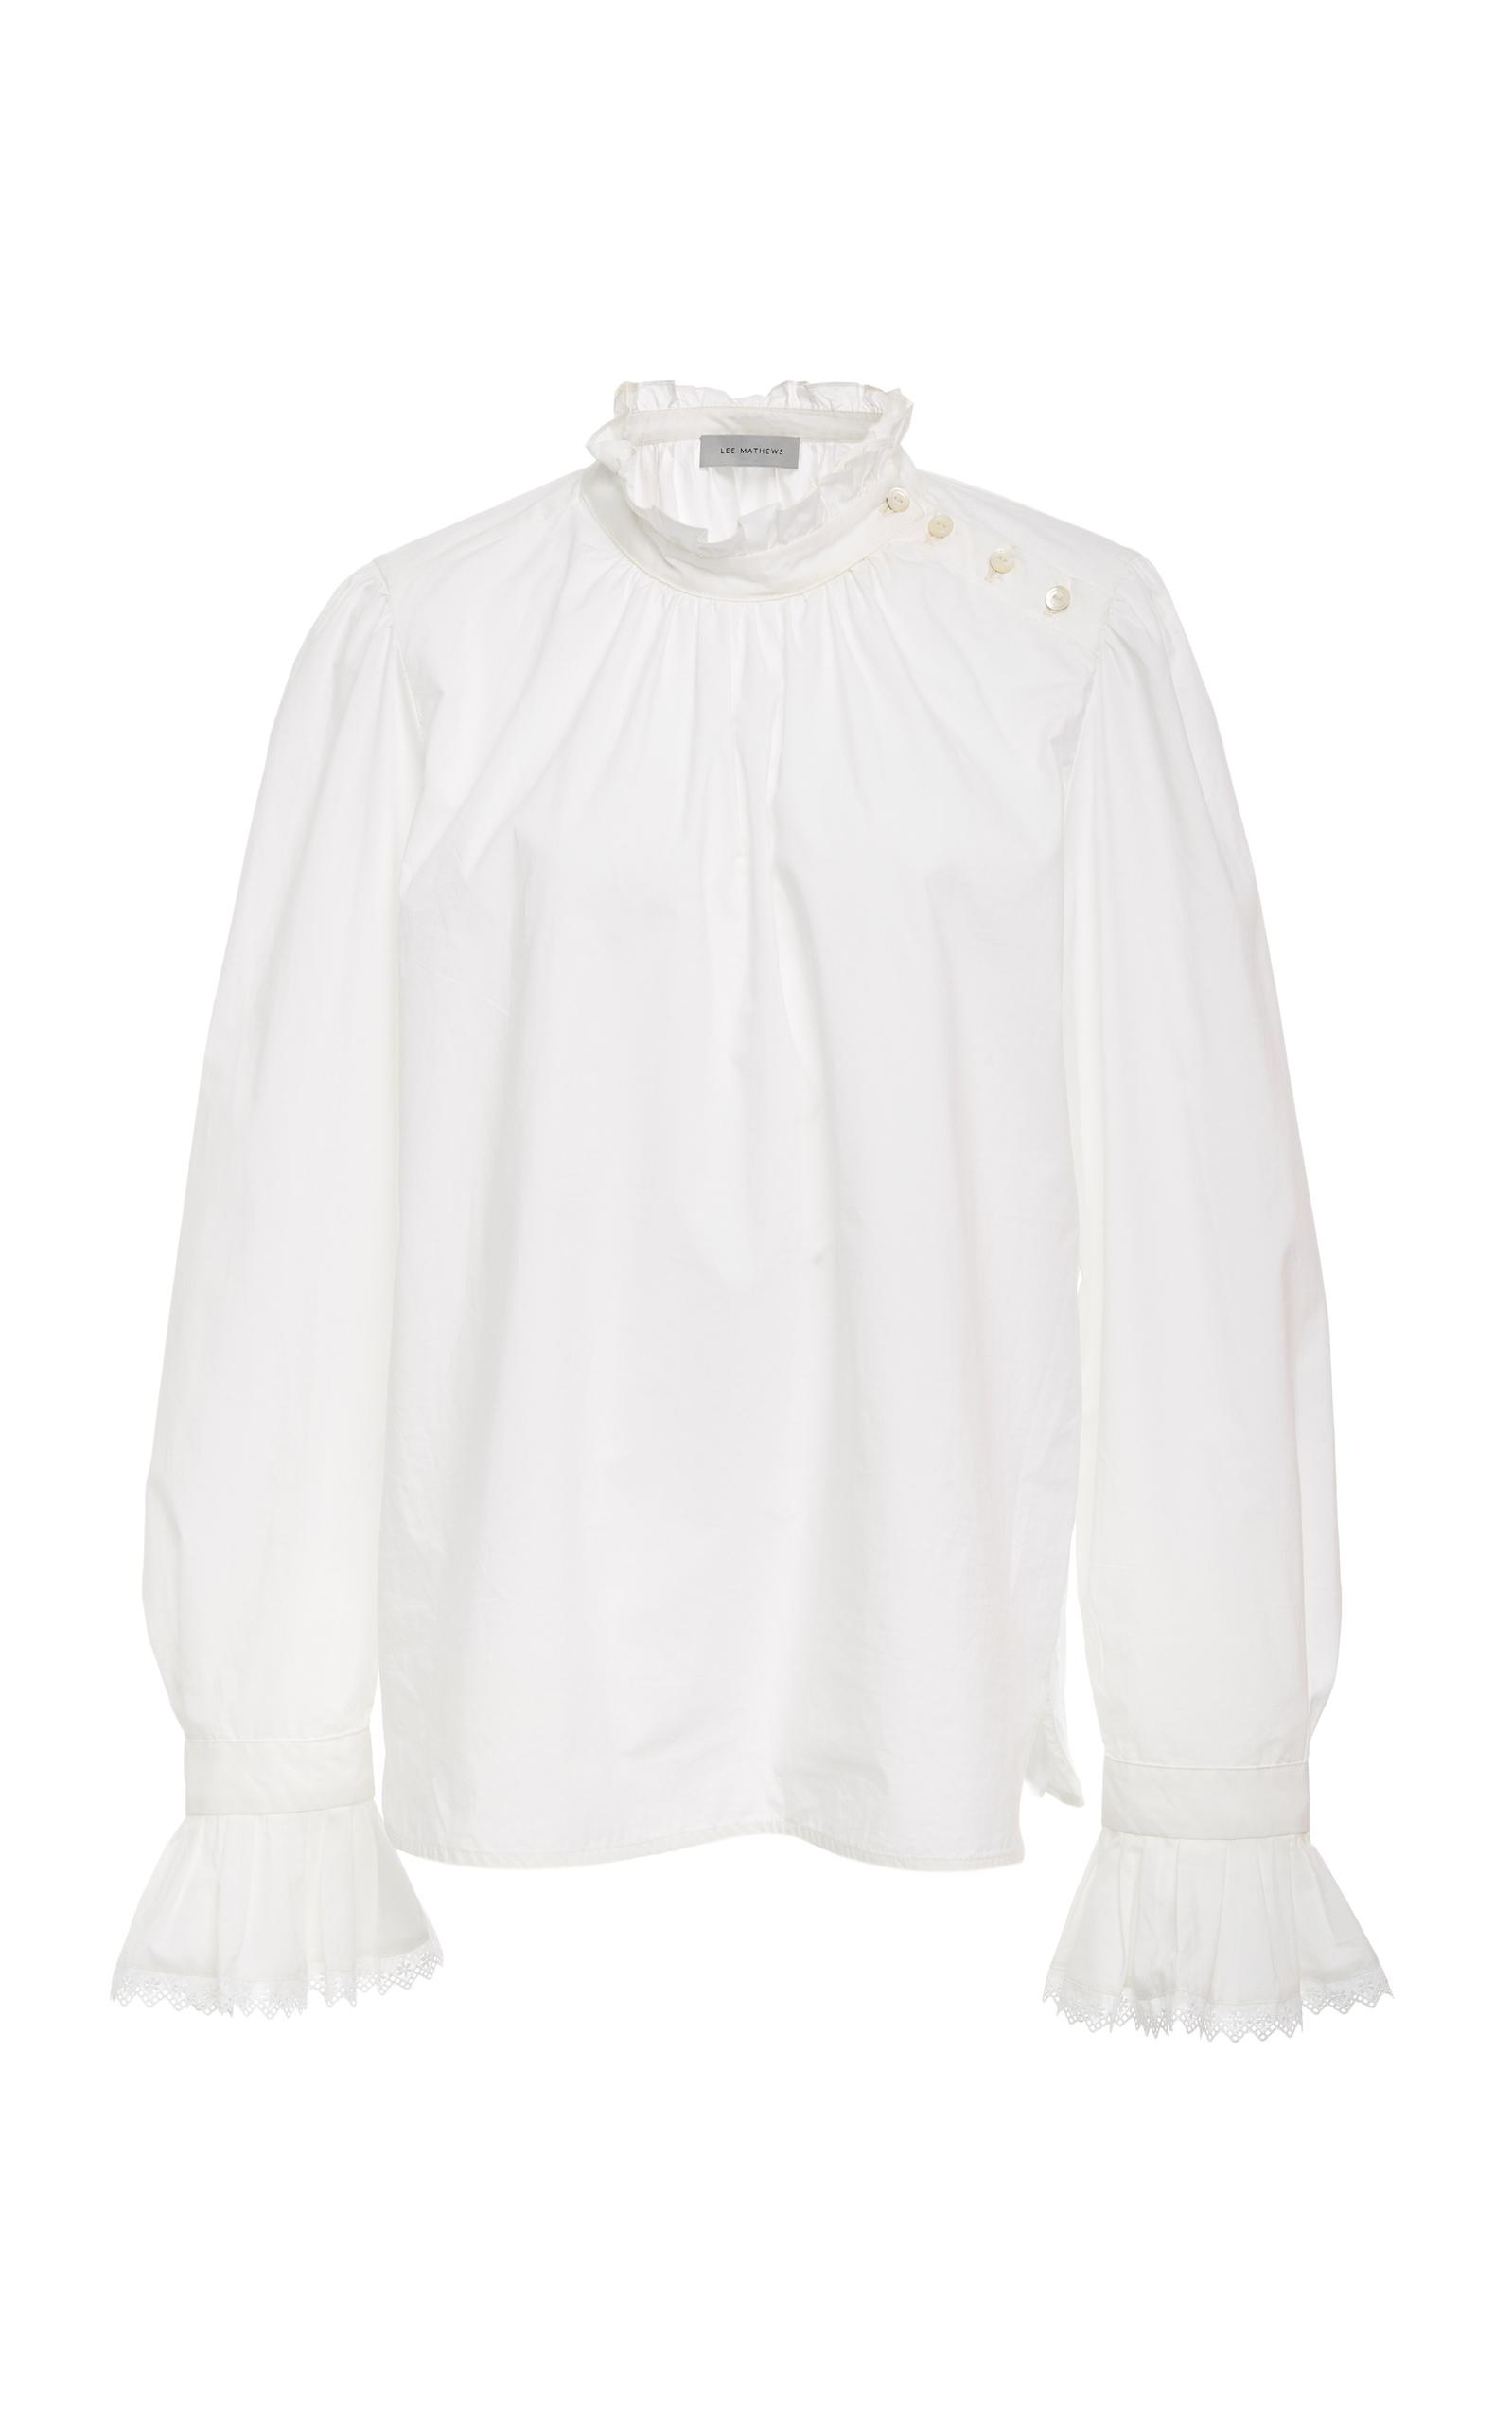 Lee Mathews Marnee Poplin Lace Top In White